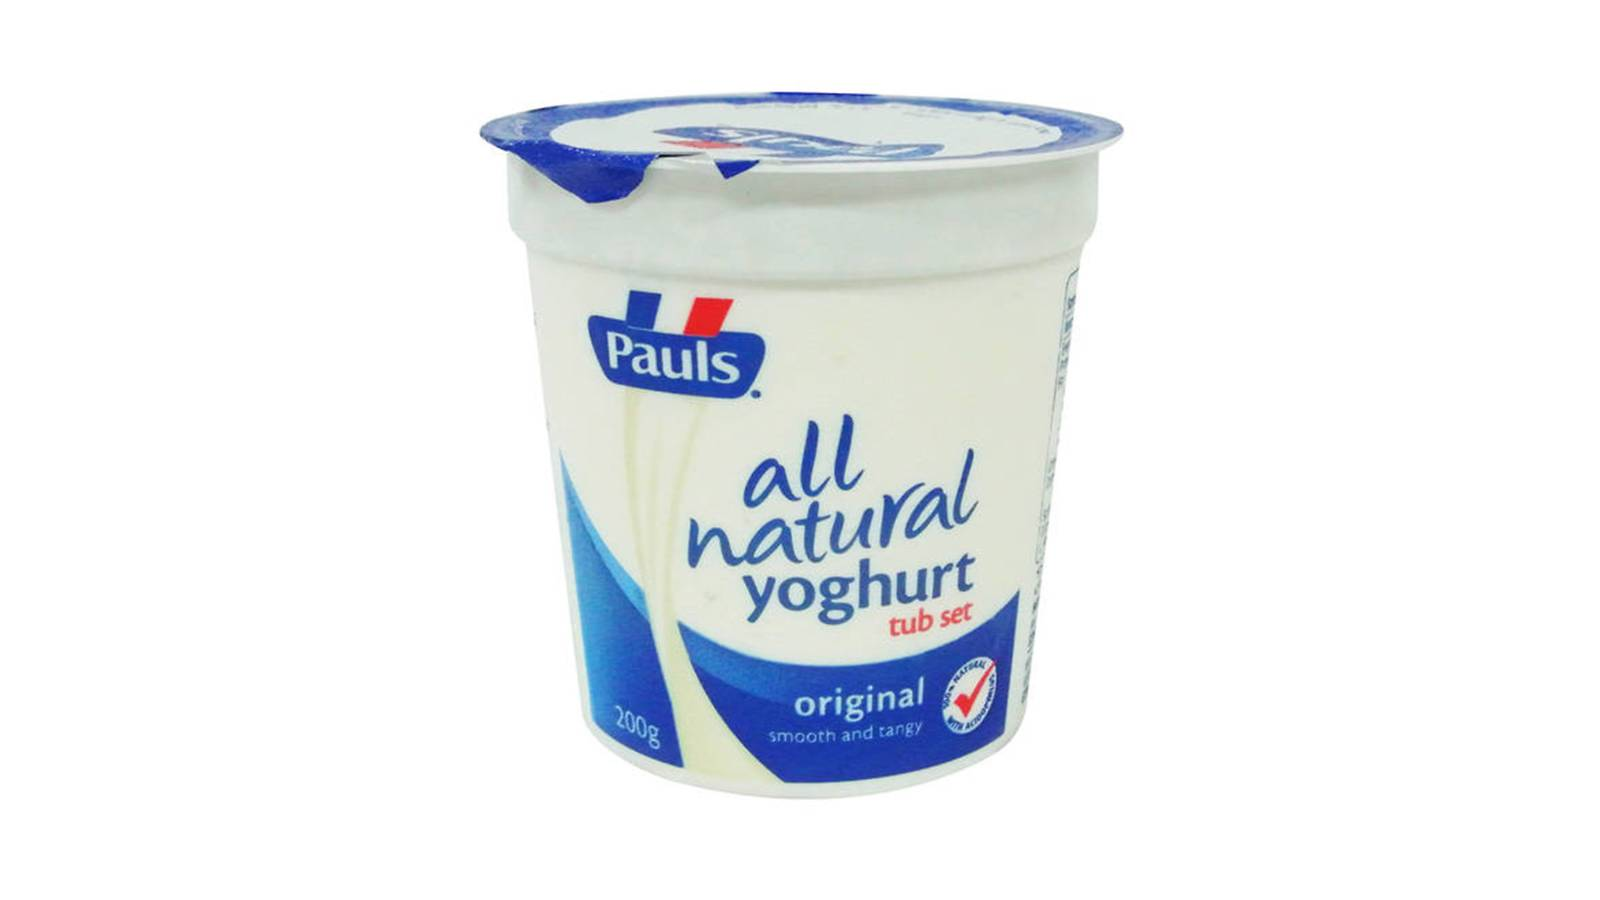 Paul's All Natural Yoghurt